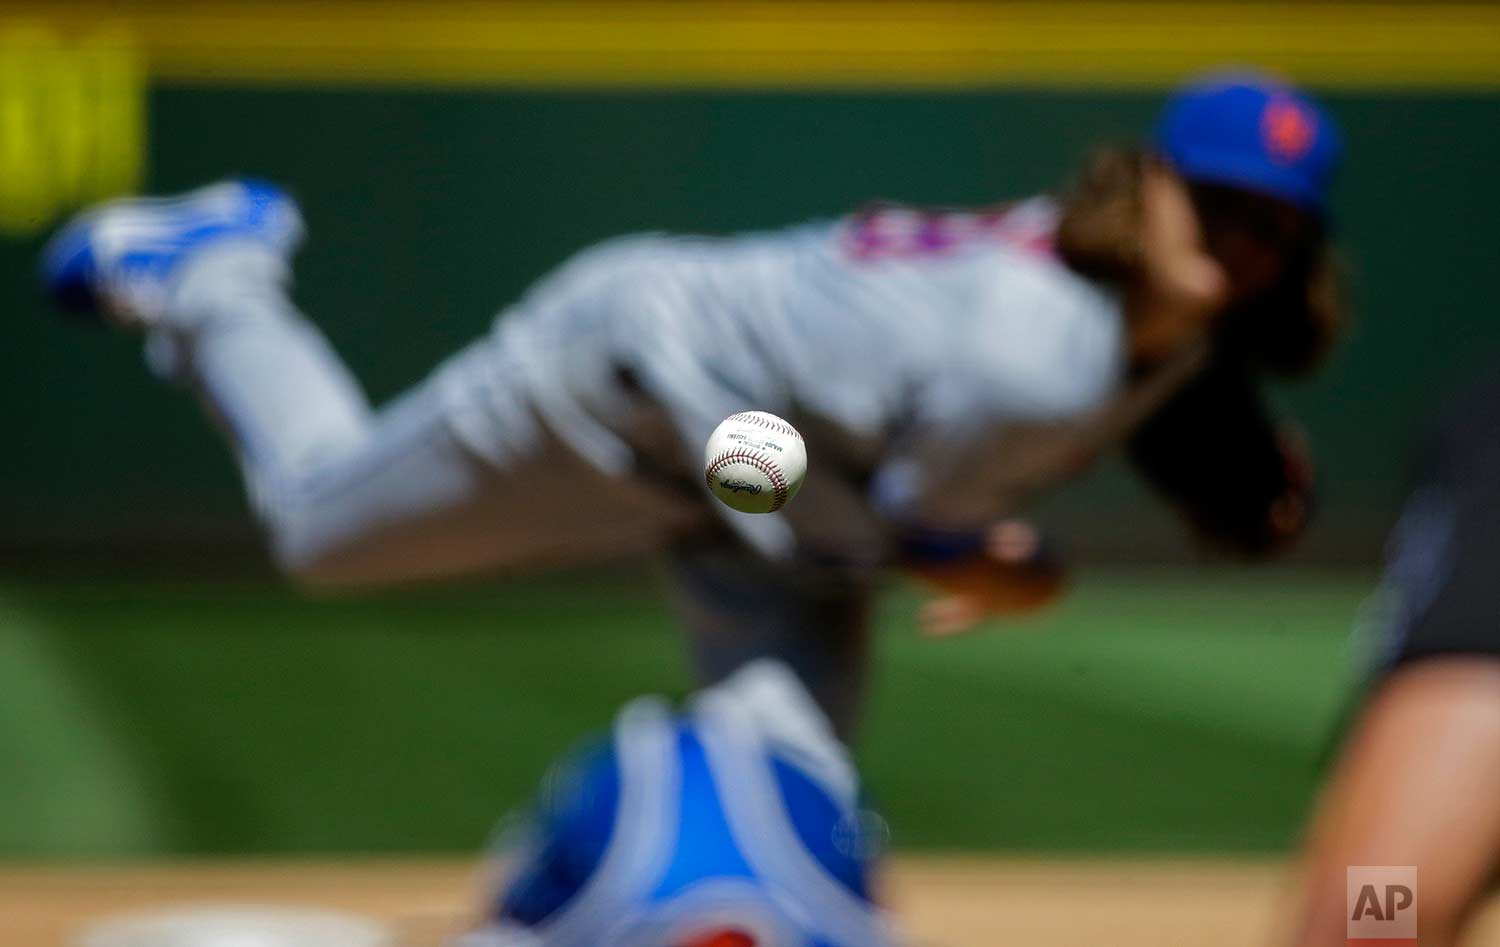 New York Mets starting pitcher Jacob deGrom pitches the ball during the fifth inning of the team's baseball game against the Seattle Mariners in Seattle on Saturday, July 29, 2017. (AP Photo/Ted S. Warren)